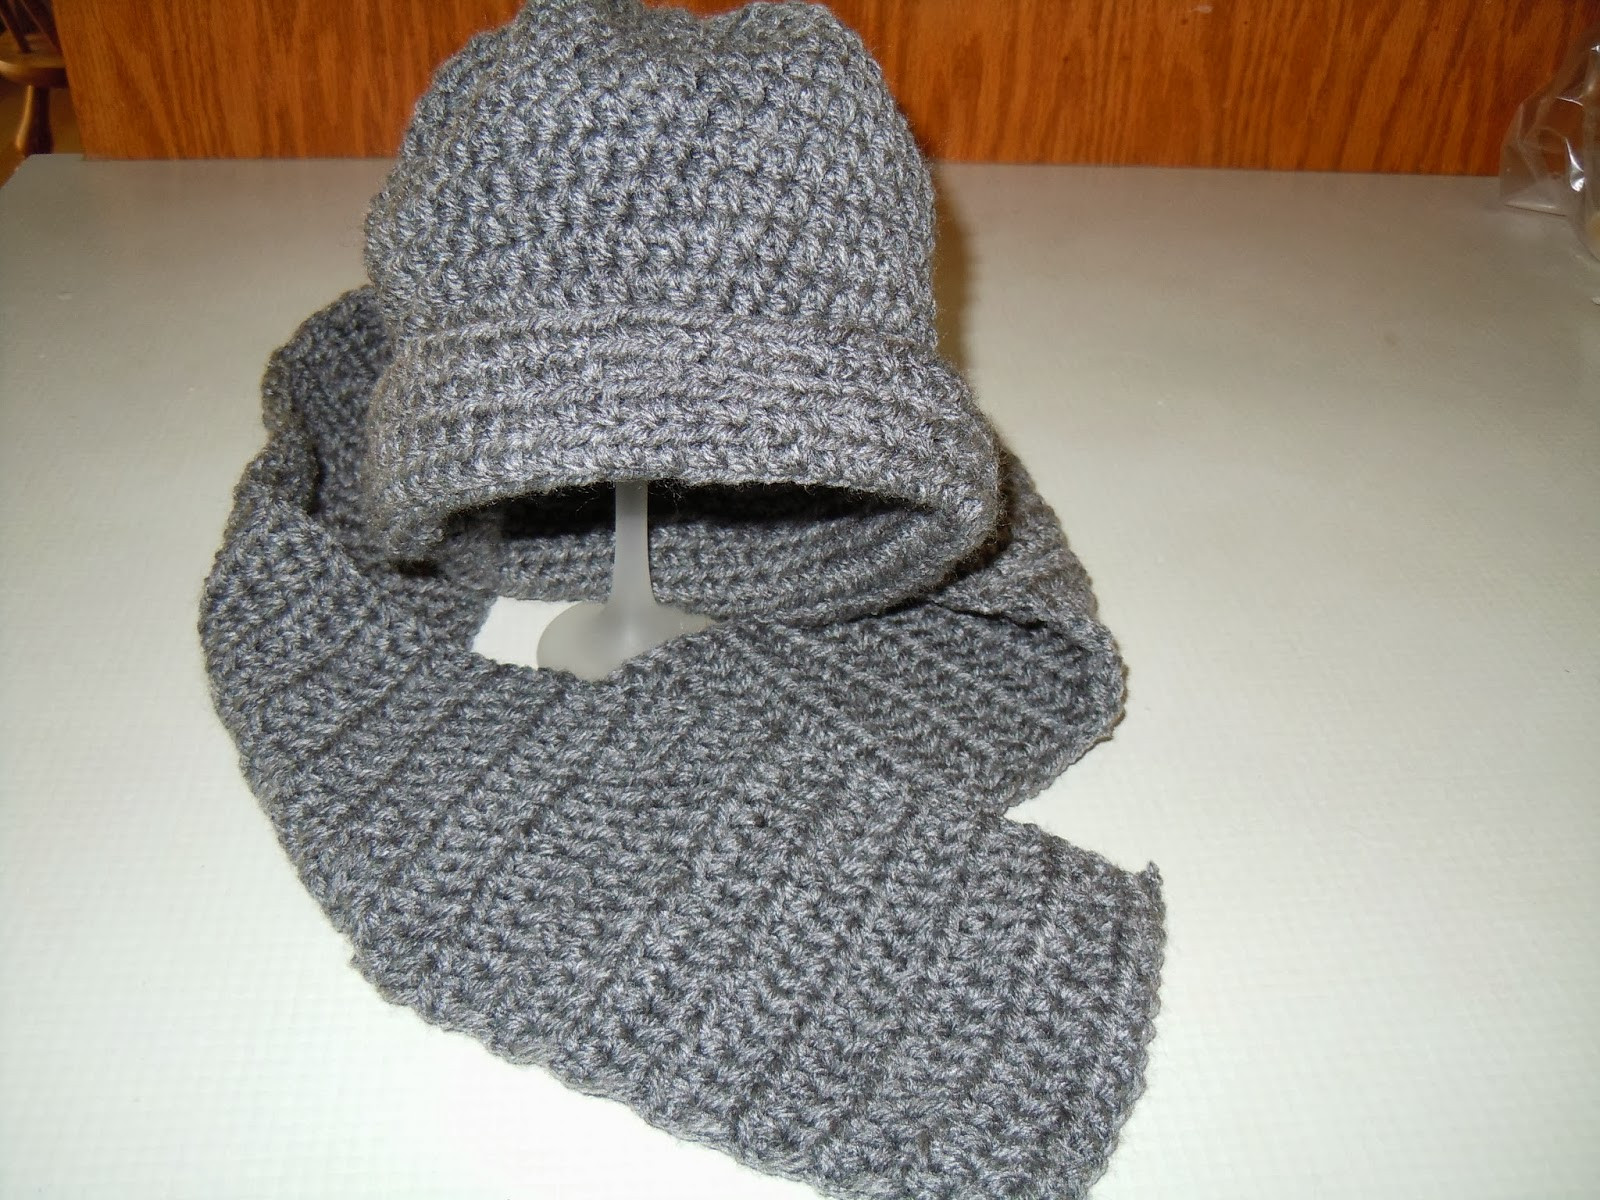 Inspirational Craftdrawer Crafts New Easy to Crochet Hat and Scarf Crochet Hat and Scarf Of Superb 50 Pics Crochet Hat and Scarf